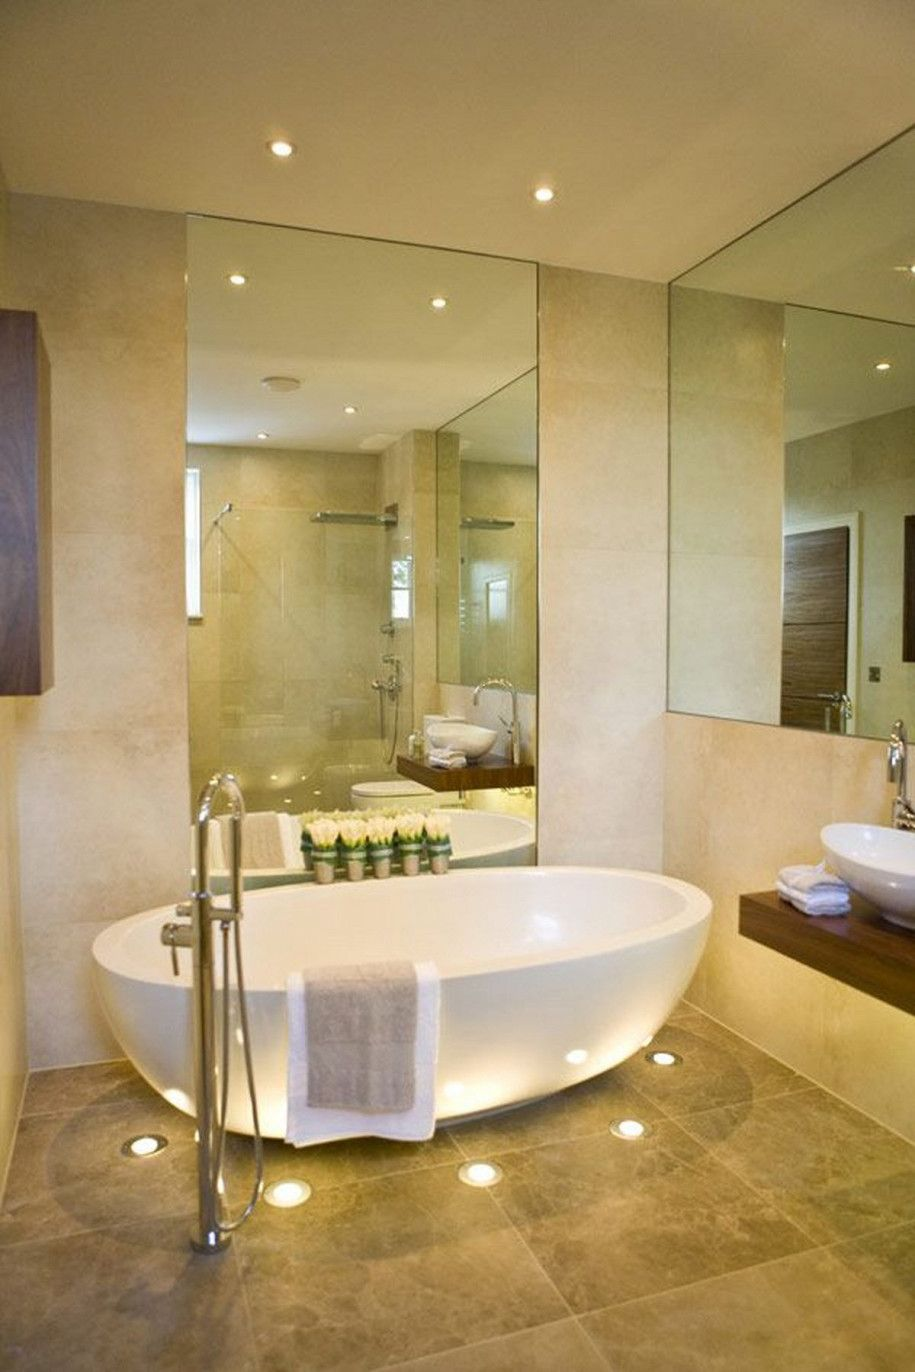 Bathroom beautiful white free standing bathtub and large wall mirror on contemporary bathroom design also brown floor tile cool water for sweet moment in